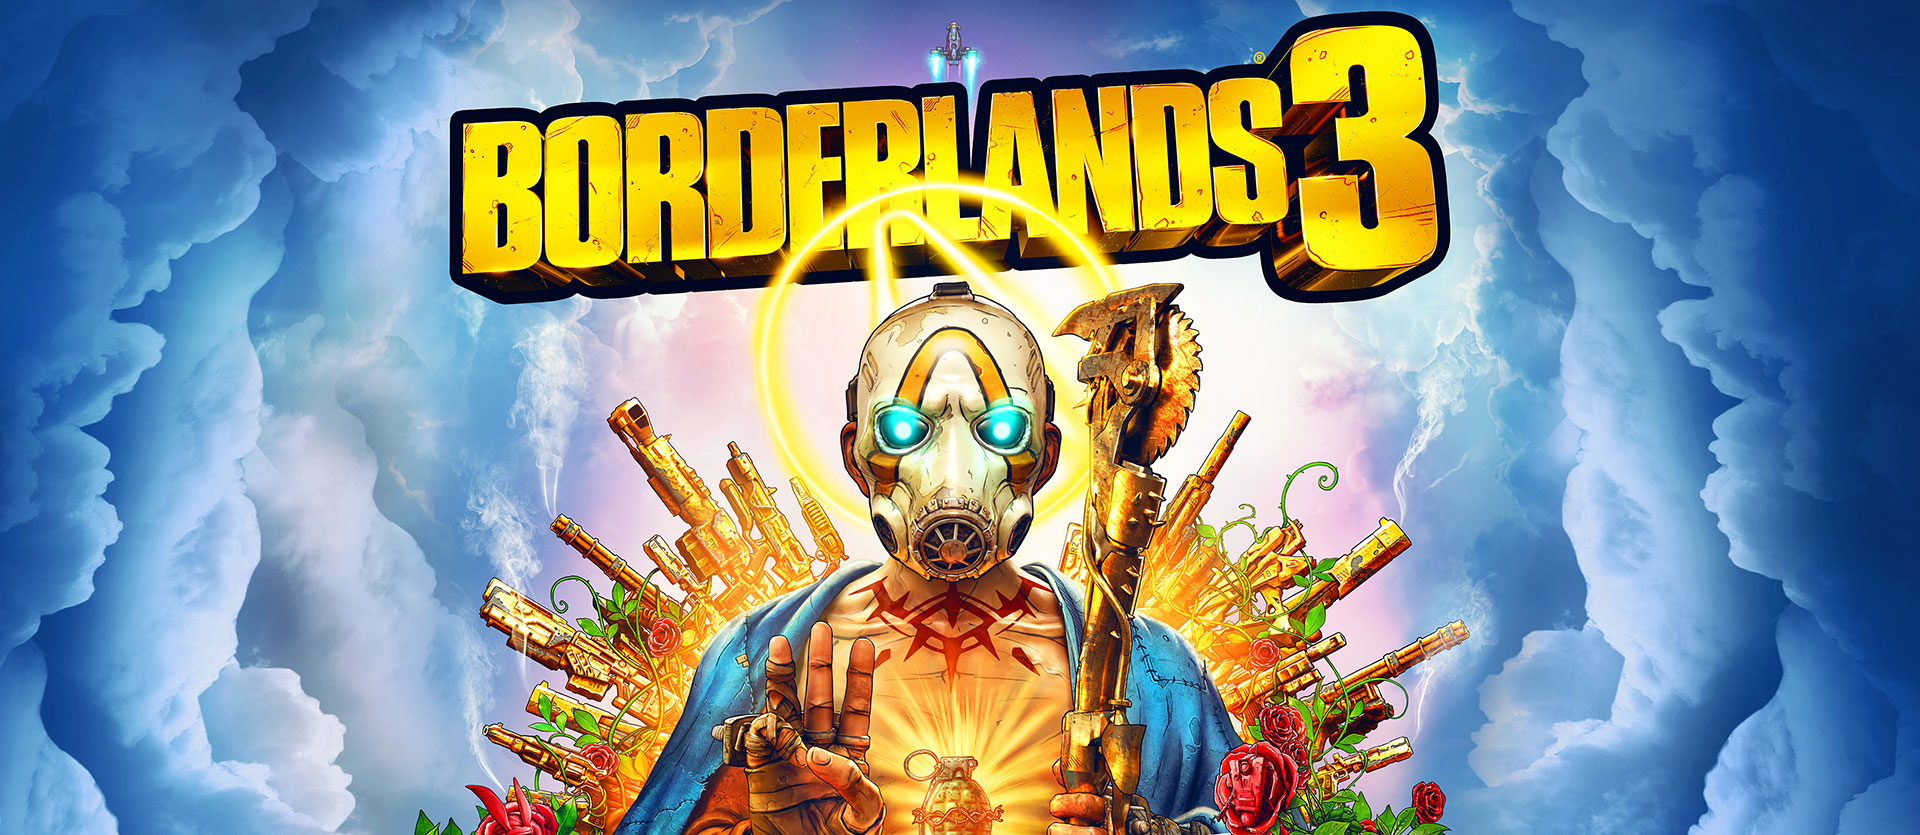 Borderlands 3 For Xbox One Xbox